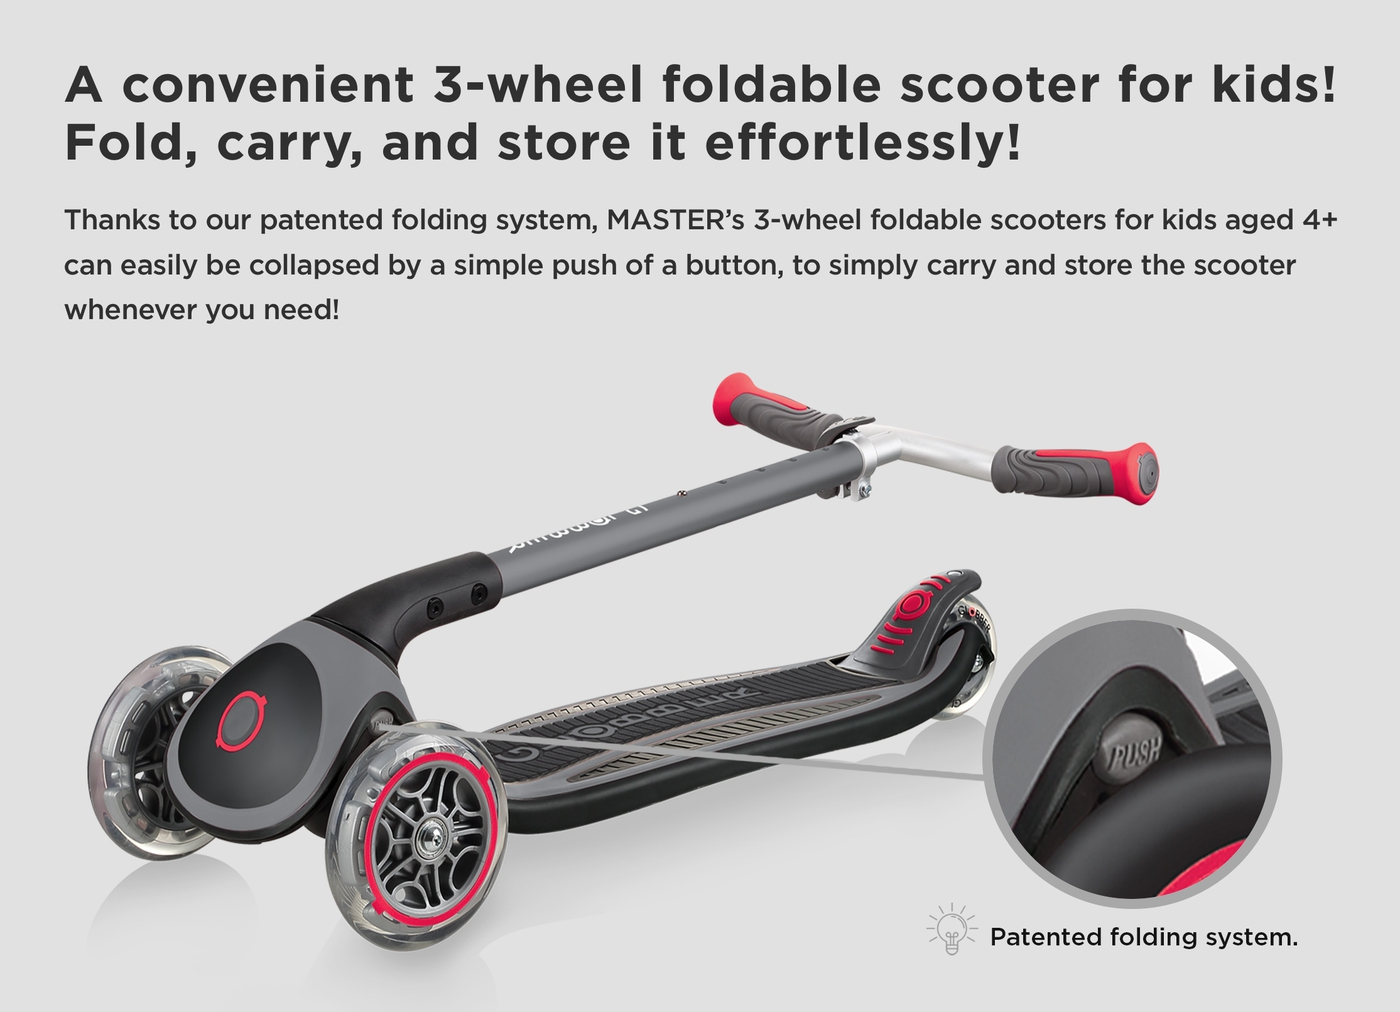 A convenient 3-wheel foldable scooter for kids! Fold, carry, and store it effortlessly!